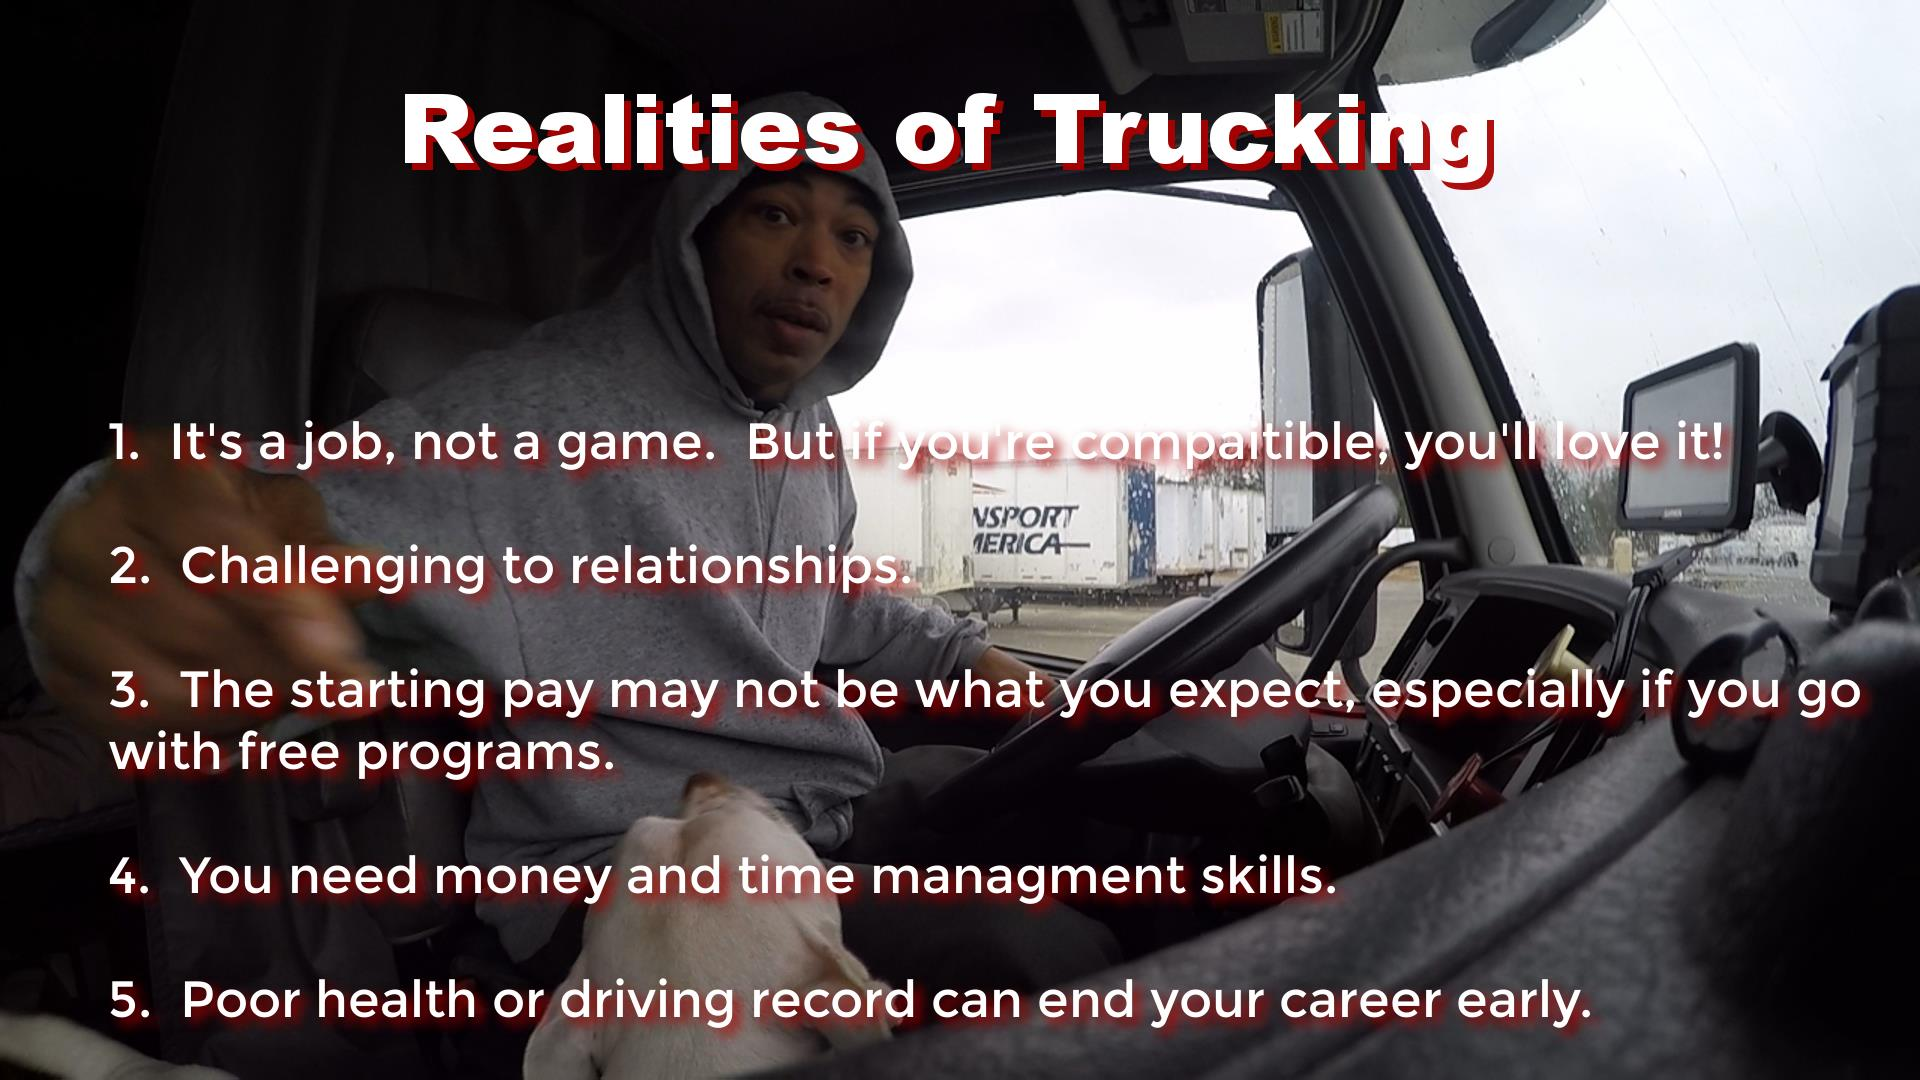 Career Trucking Reality Of Trucking